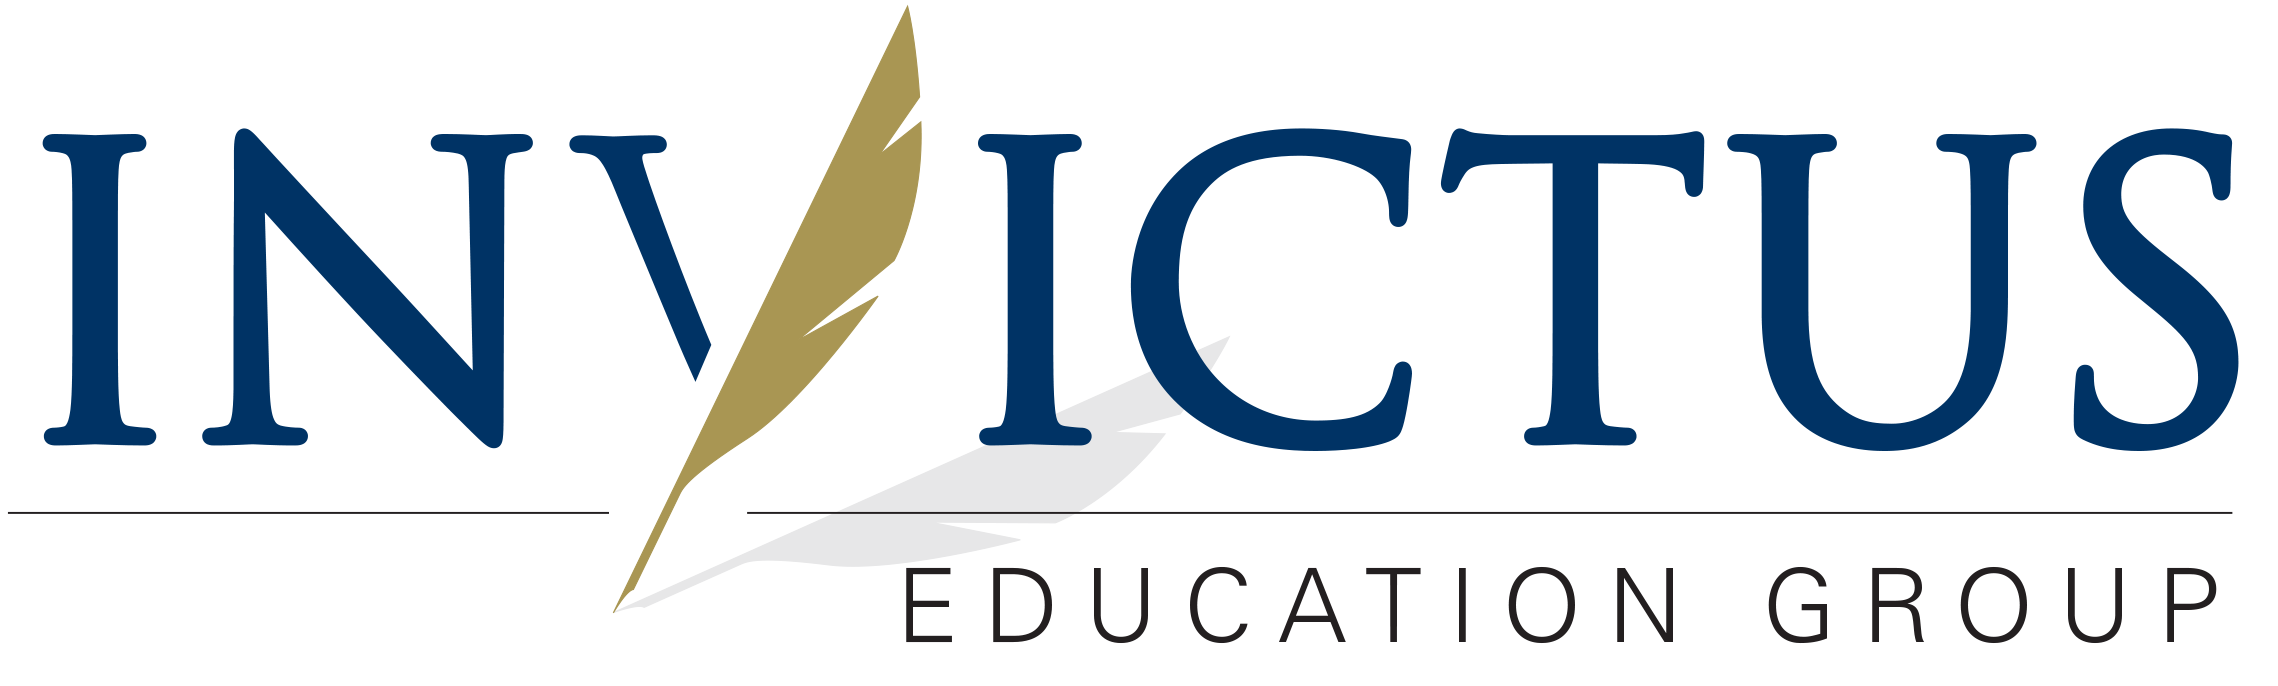 Invictus Education Group